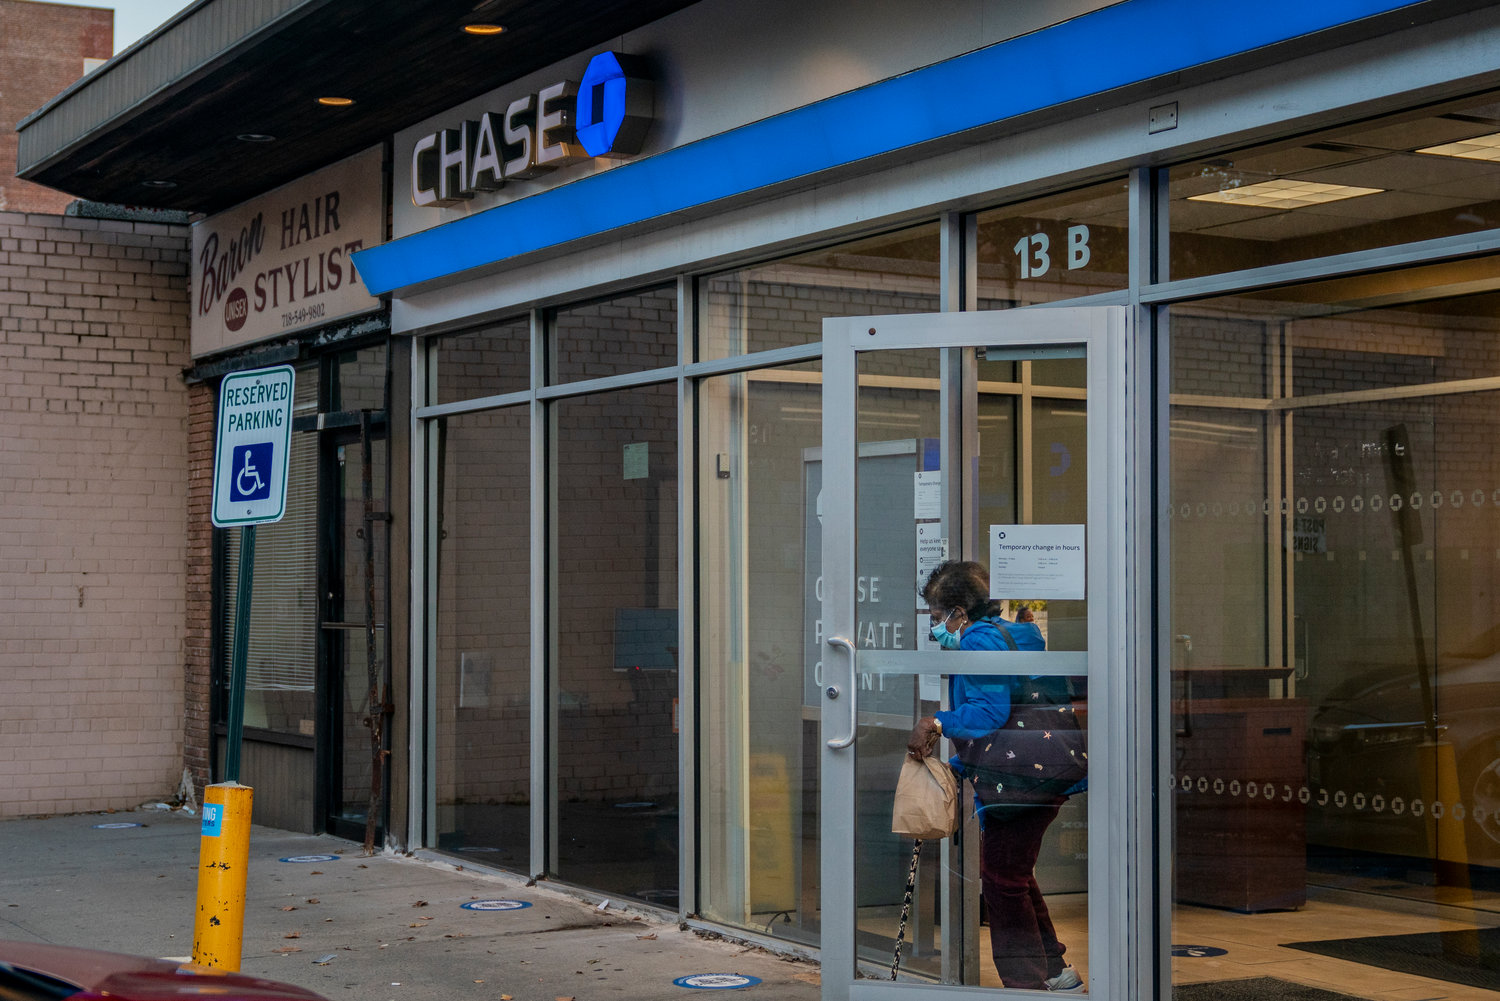 Low foot traffic, nearby branches, and more customers using online services all contribute to the decision to close a branch — but neighbors say the Knolls Crescent location of Chase Bank is critical for older customers and small businesses making cash deposits.